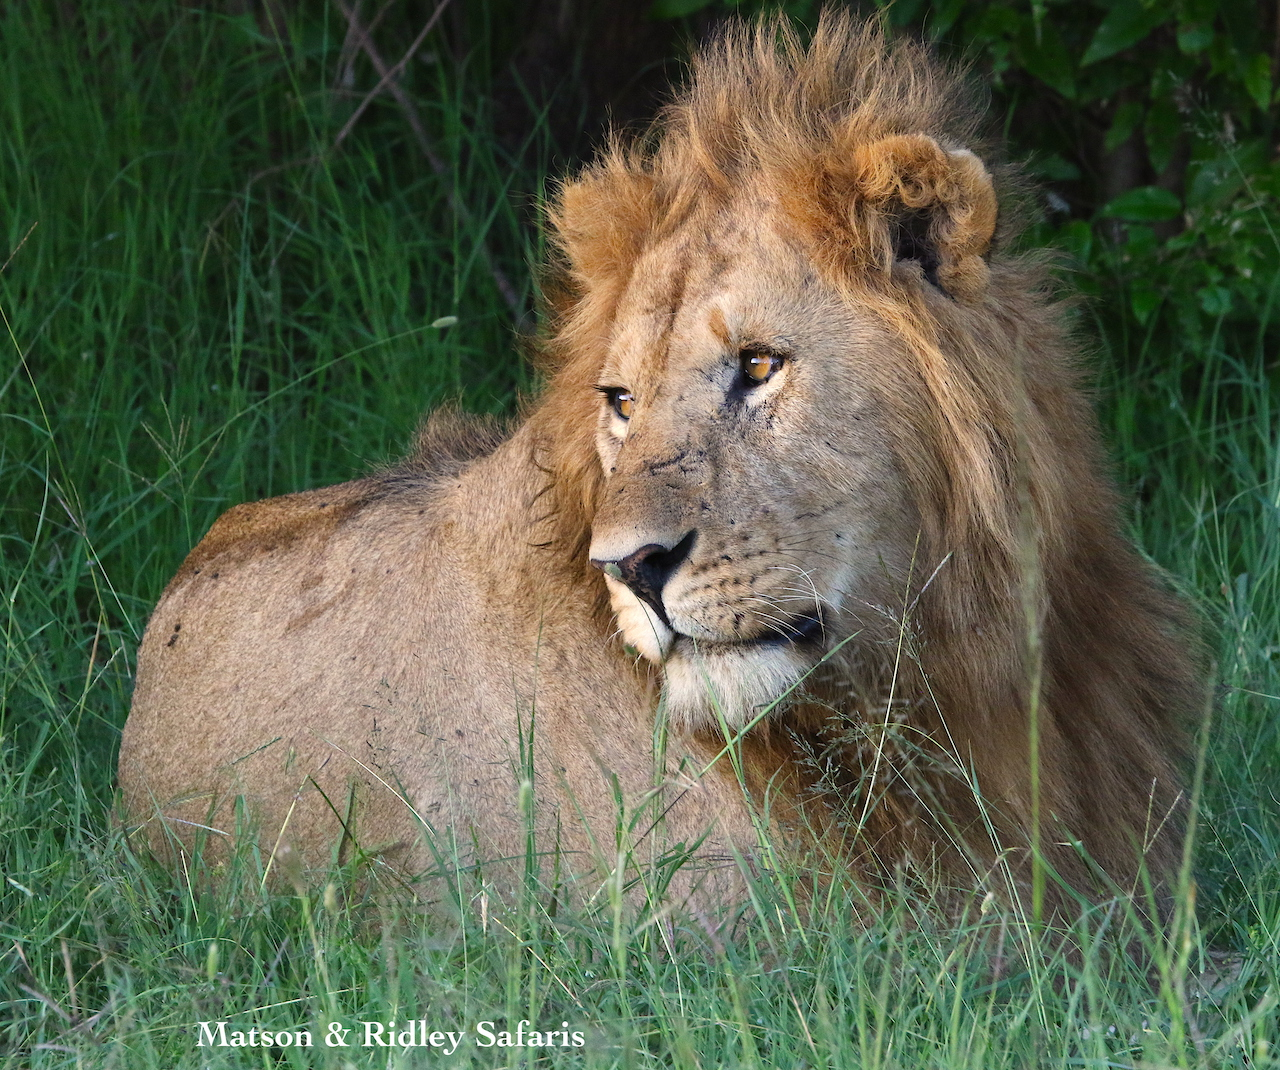 lion between mating reduced for website